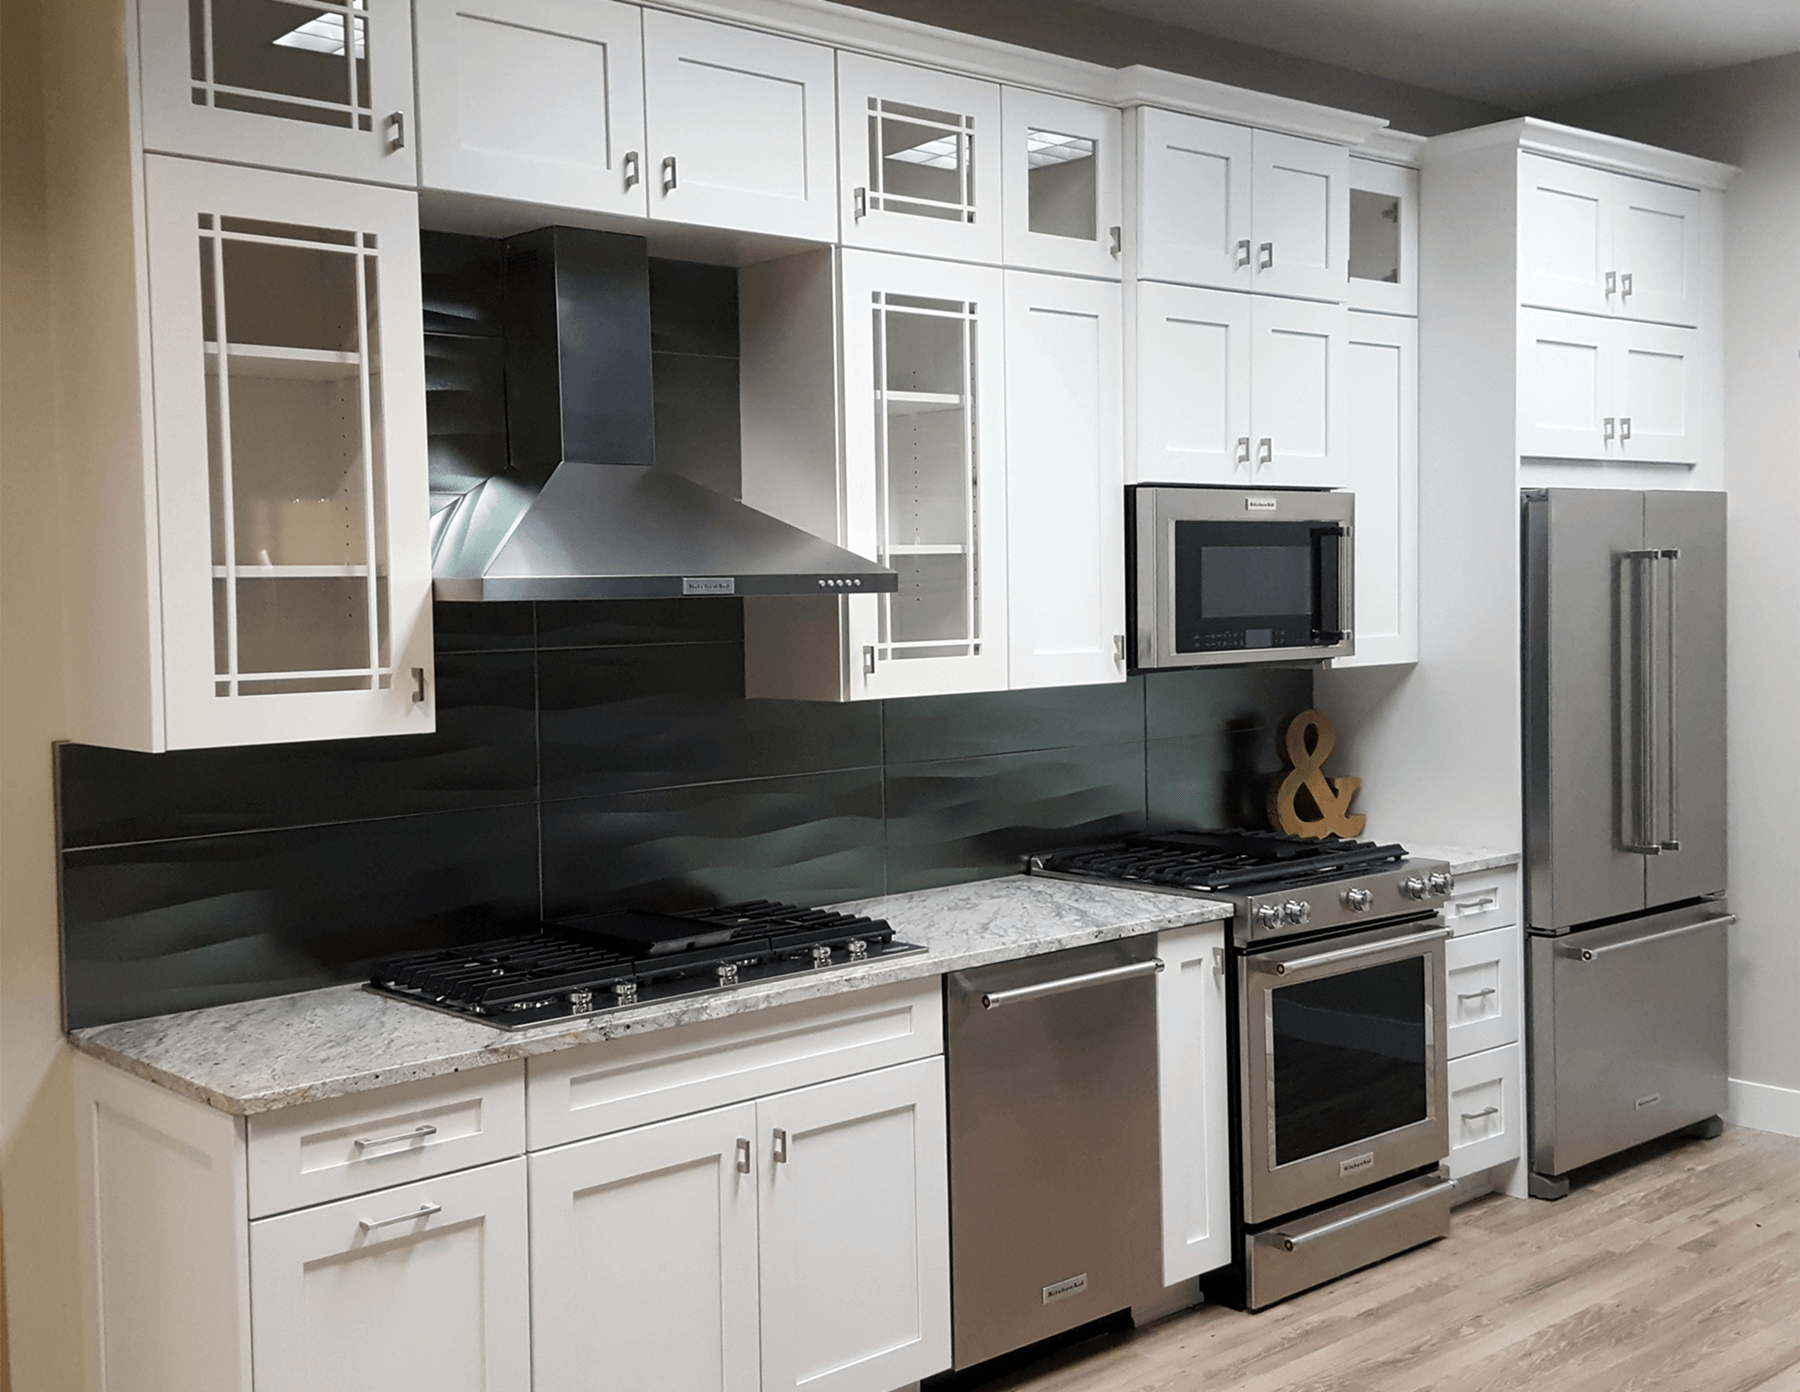 Pre Fab White Shaker Kitchen Cabinets Are An Affordable Well Built And Beautiful Op White Shaker Kitchen White Shaker Kitchen Cabinets Shaker Kitchen Cabinets